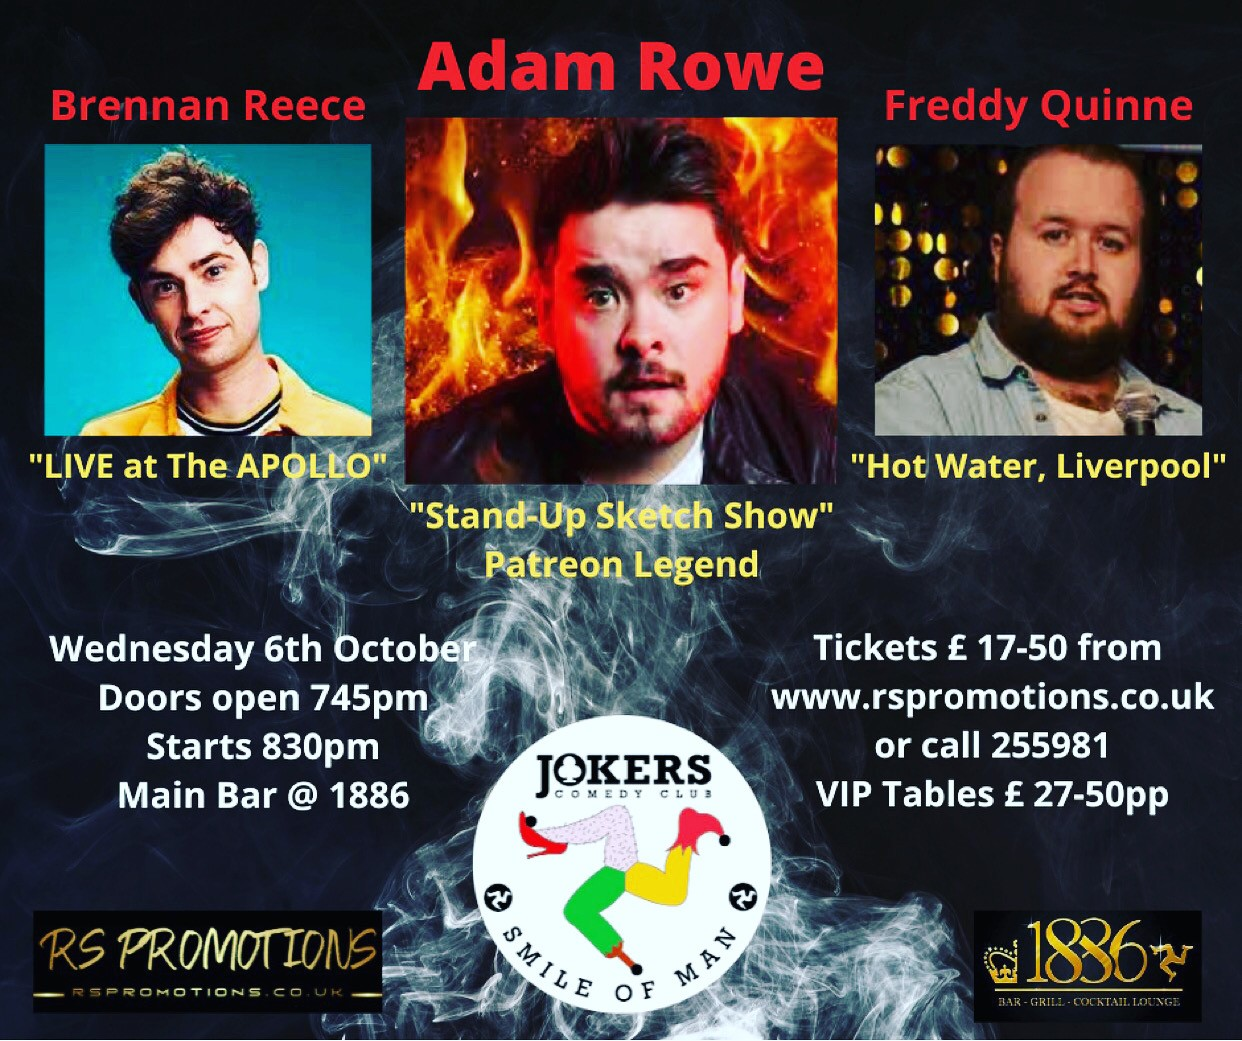 JOKERS COMEDY CLUB IOM - Featuring ADAM ROWE - 6th Oct 2021  on Oct 06, 20:15@1886 BAR & GRILL - Buy tickets and Get information on RS PROMOTIONS